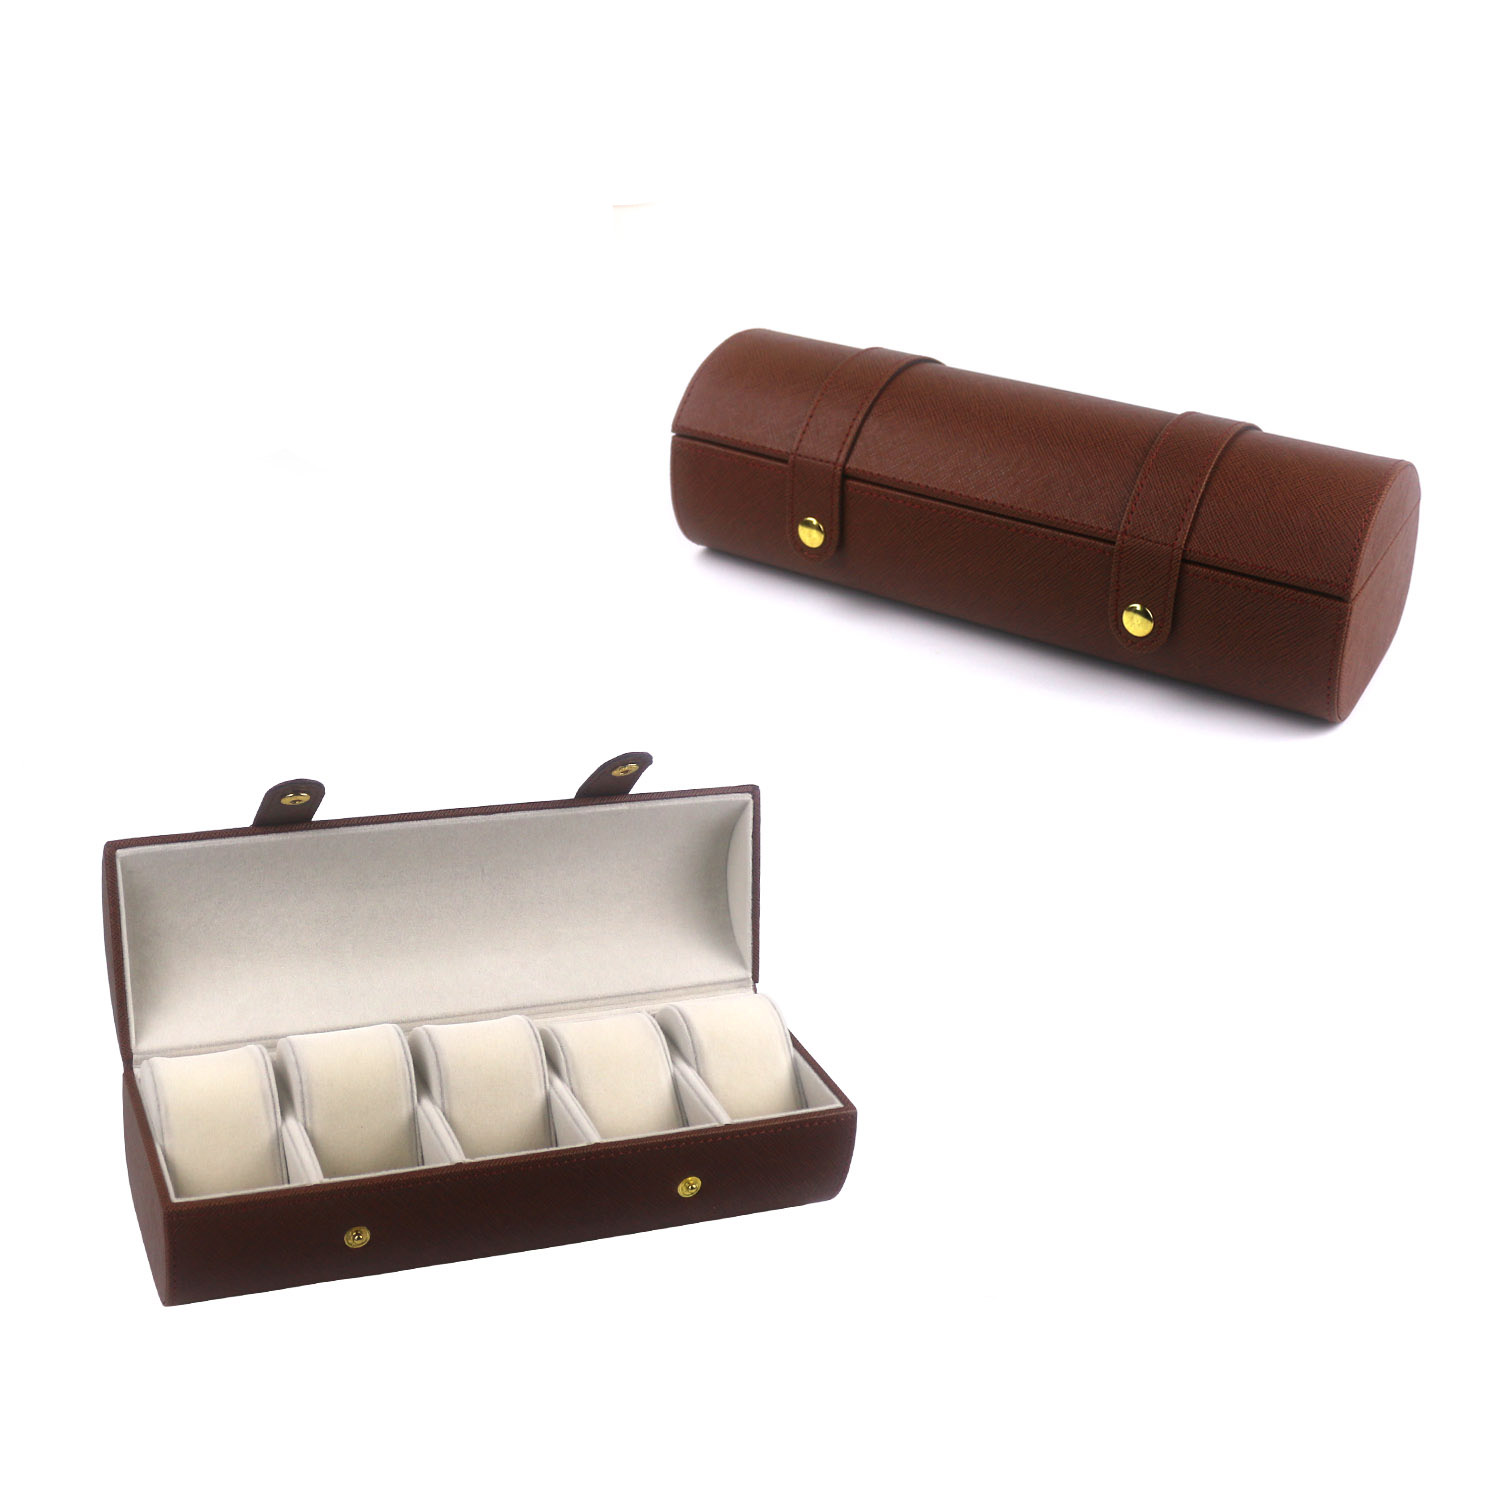 Pu leather watch travel case